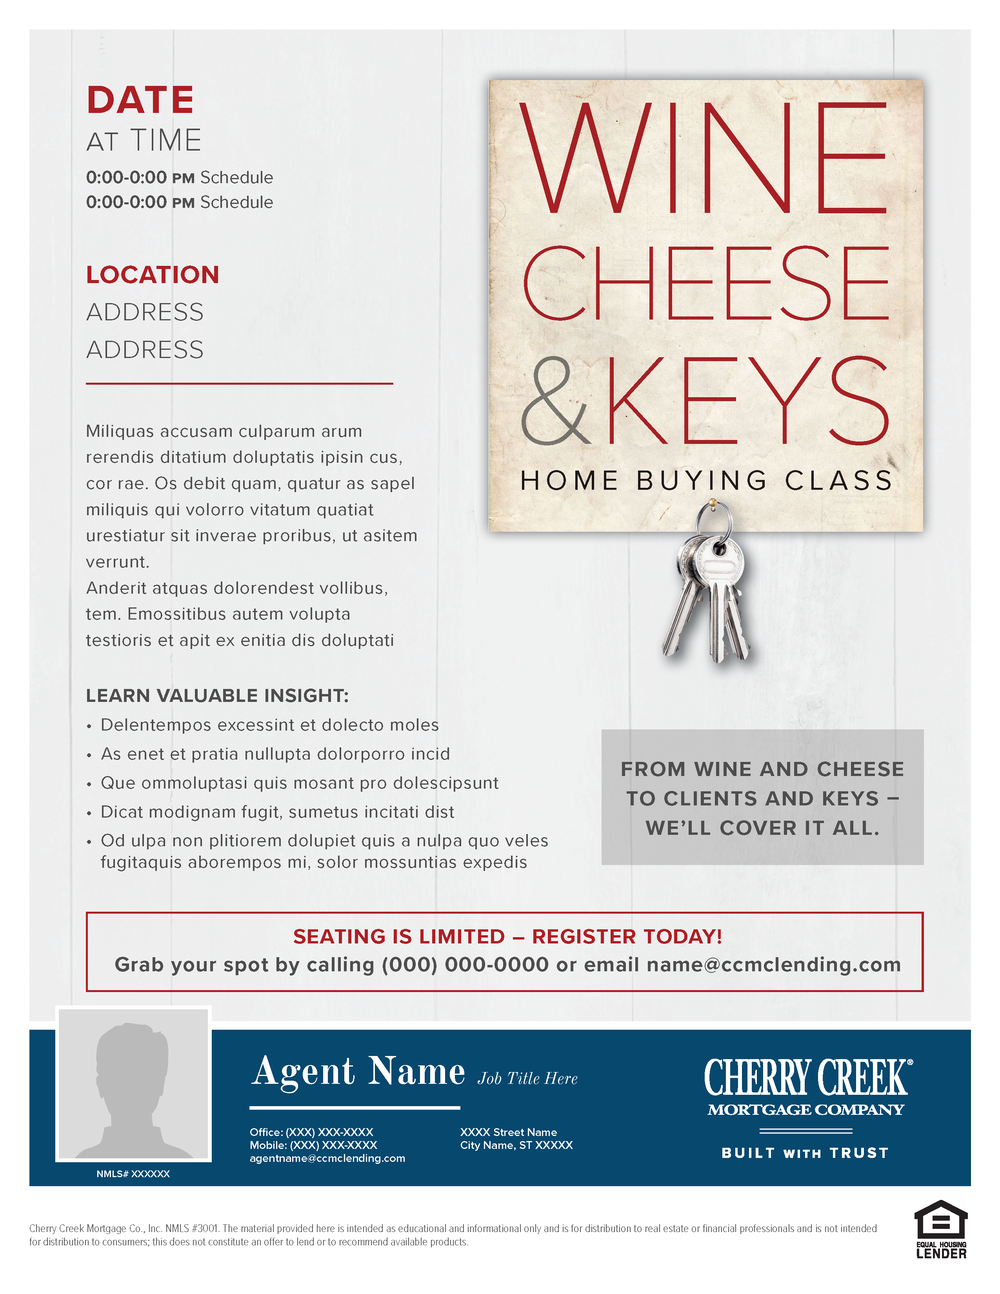 Wine and Cheese Flyer 3_Page_1.png